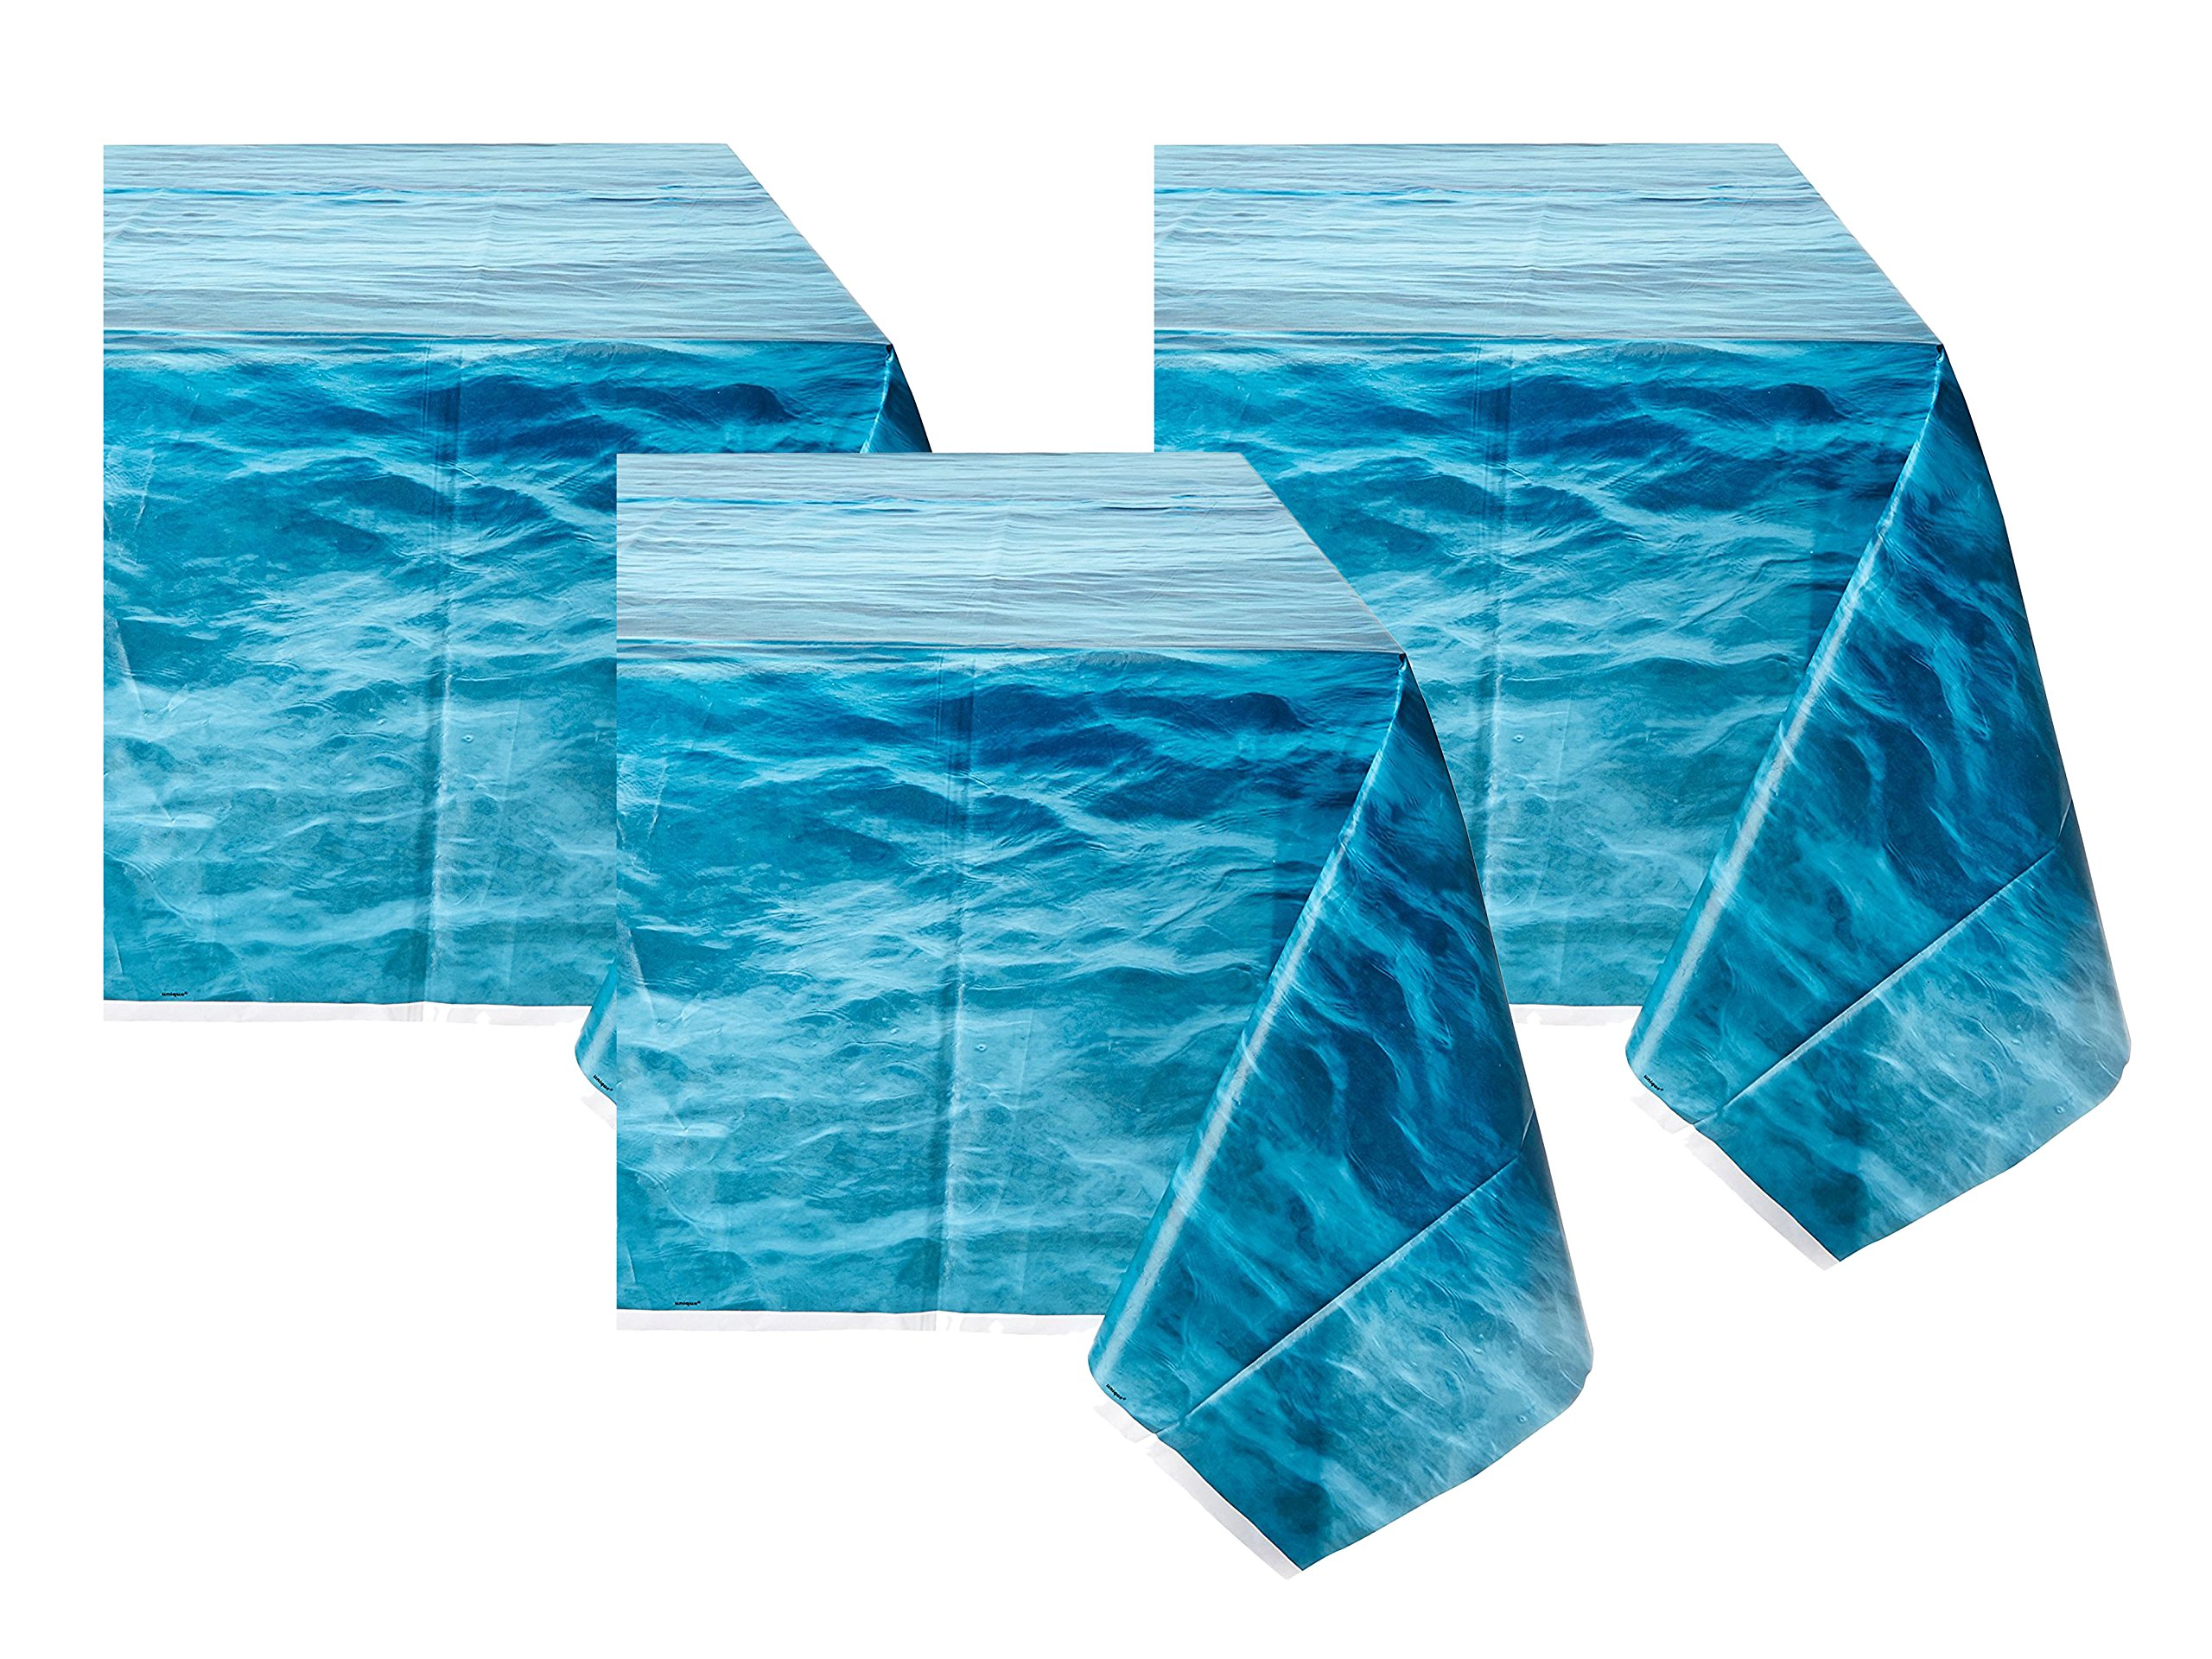 Ocean Waves Plastic Tablecloth, 108'' x 54'' (3 pack) by Unique